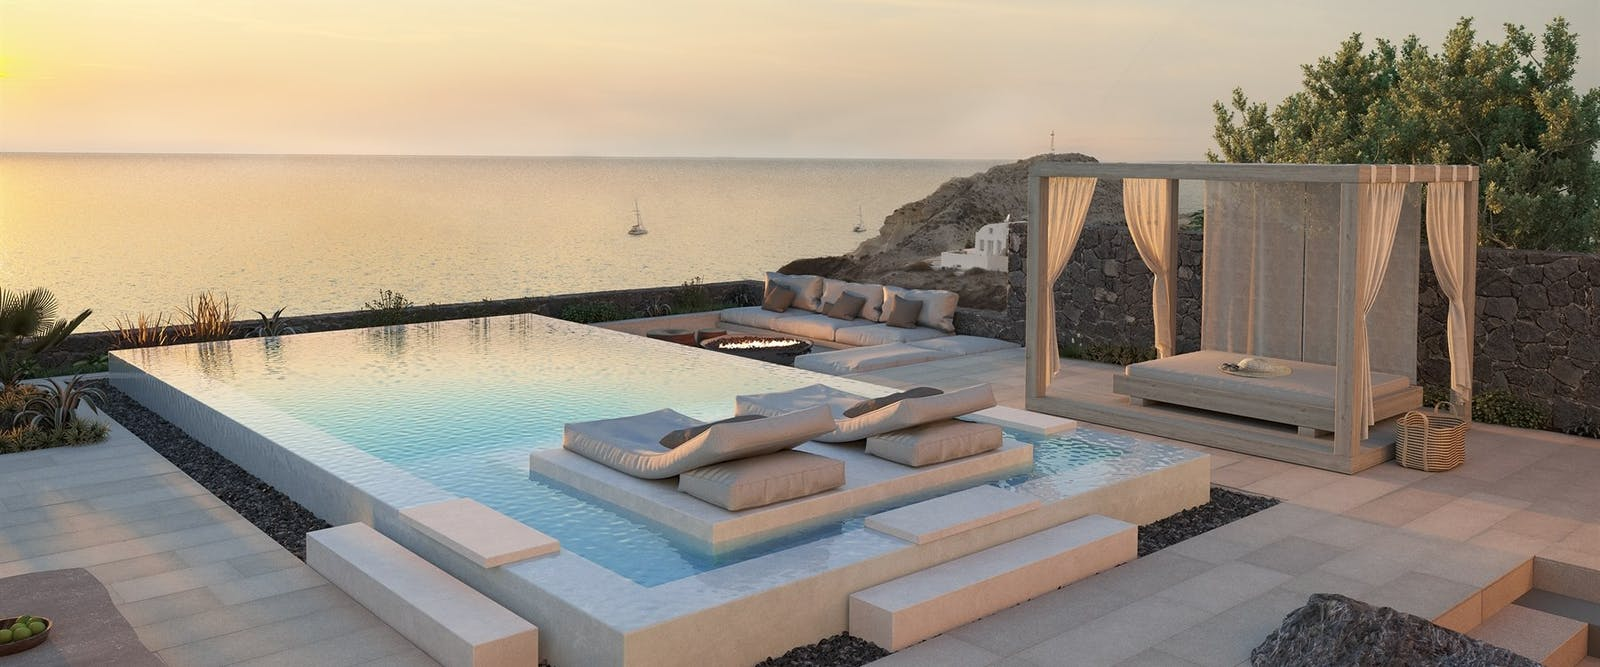 Swimming Pool at Canaves Oia Epitome, Santorini, Greece